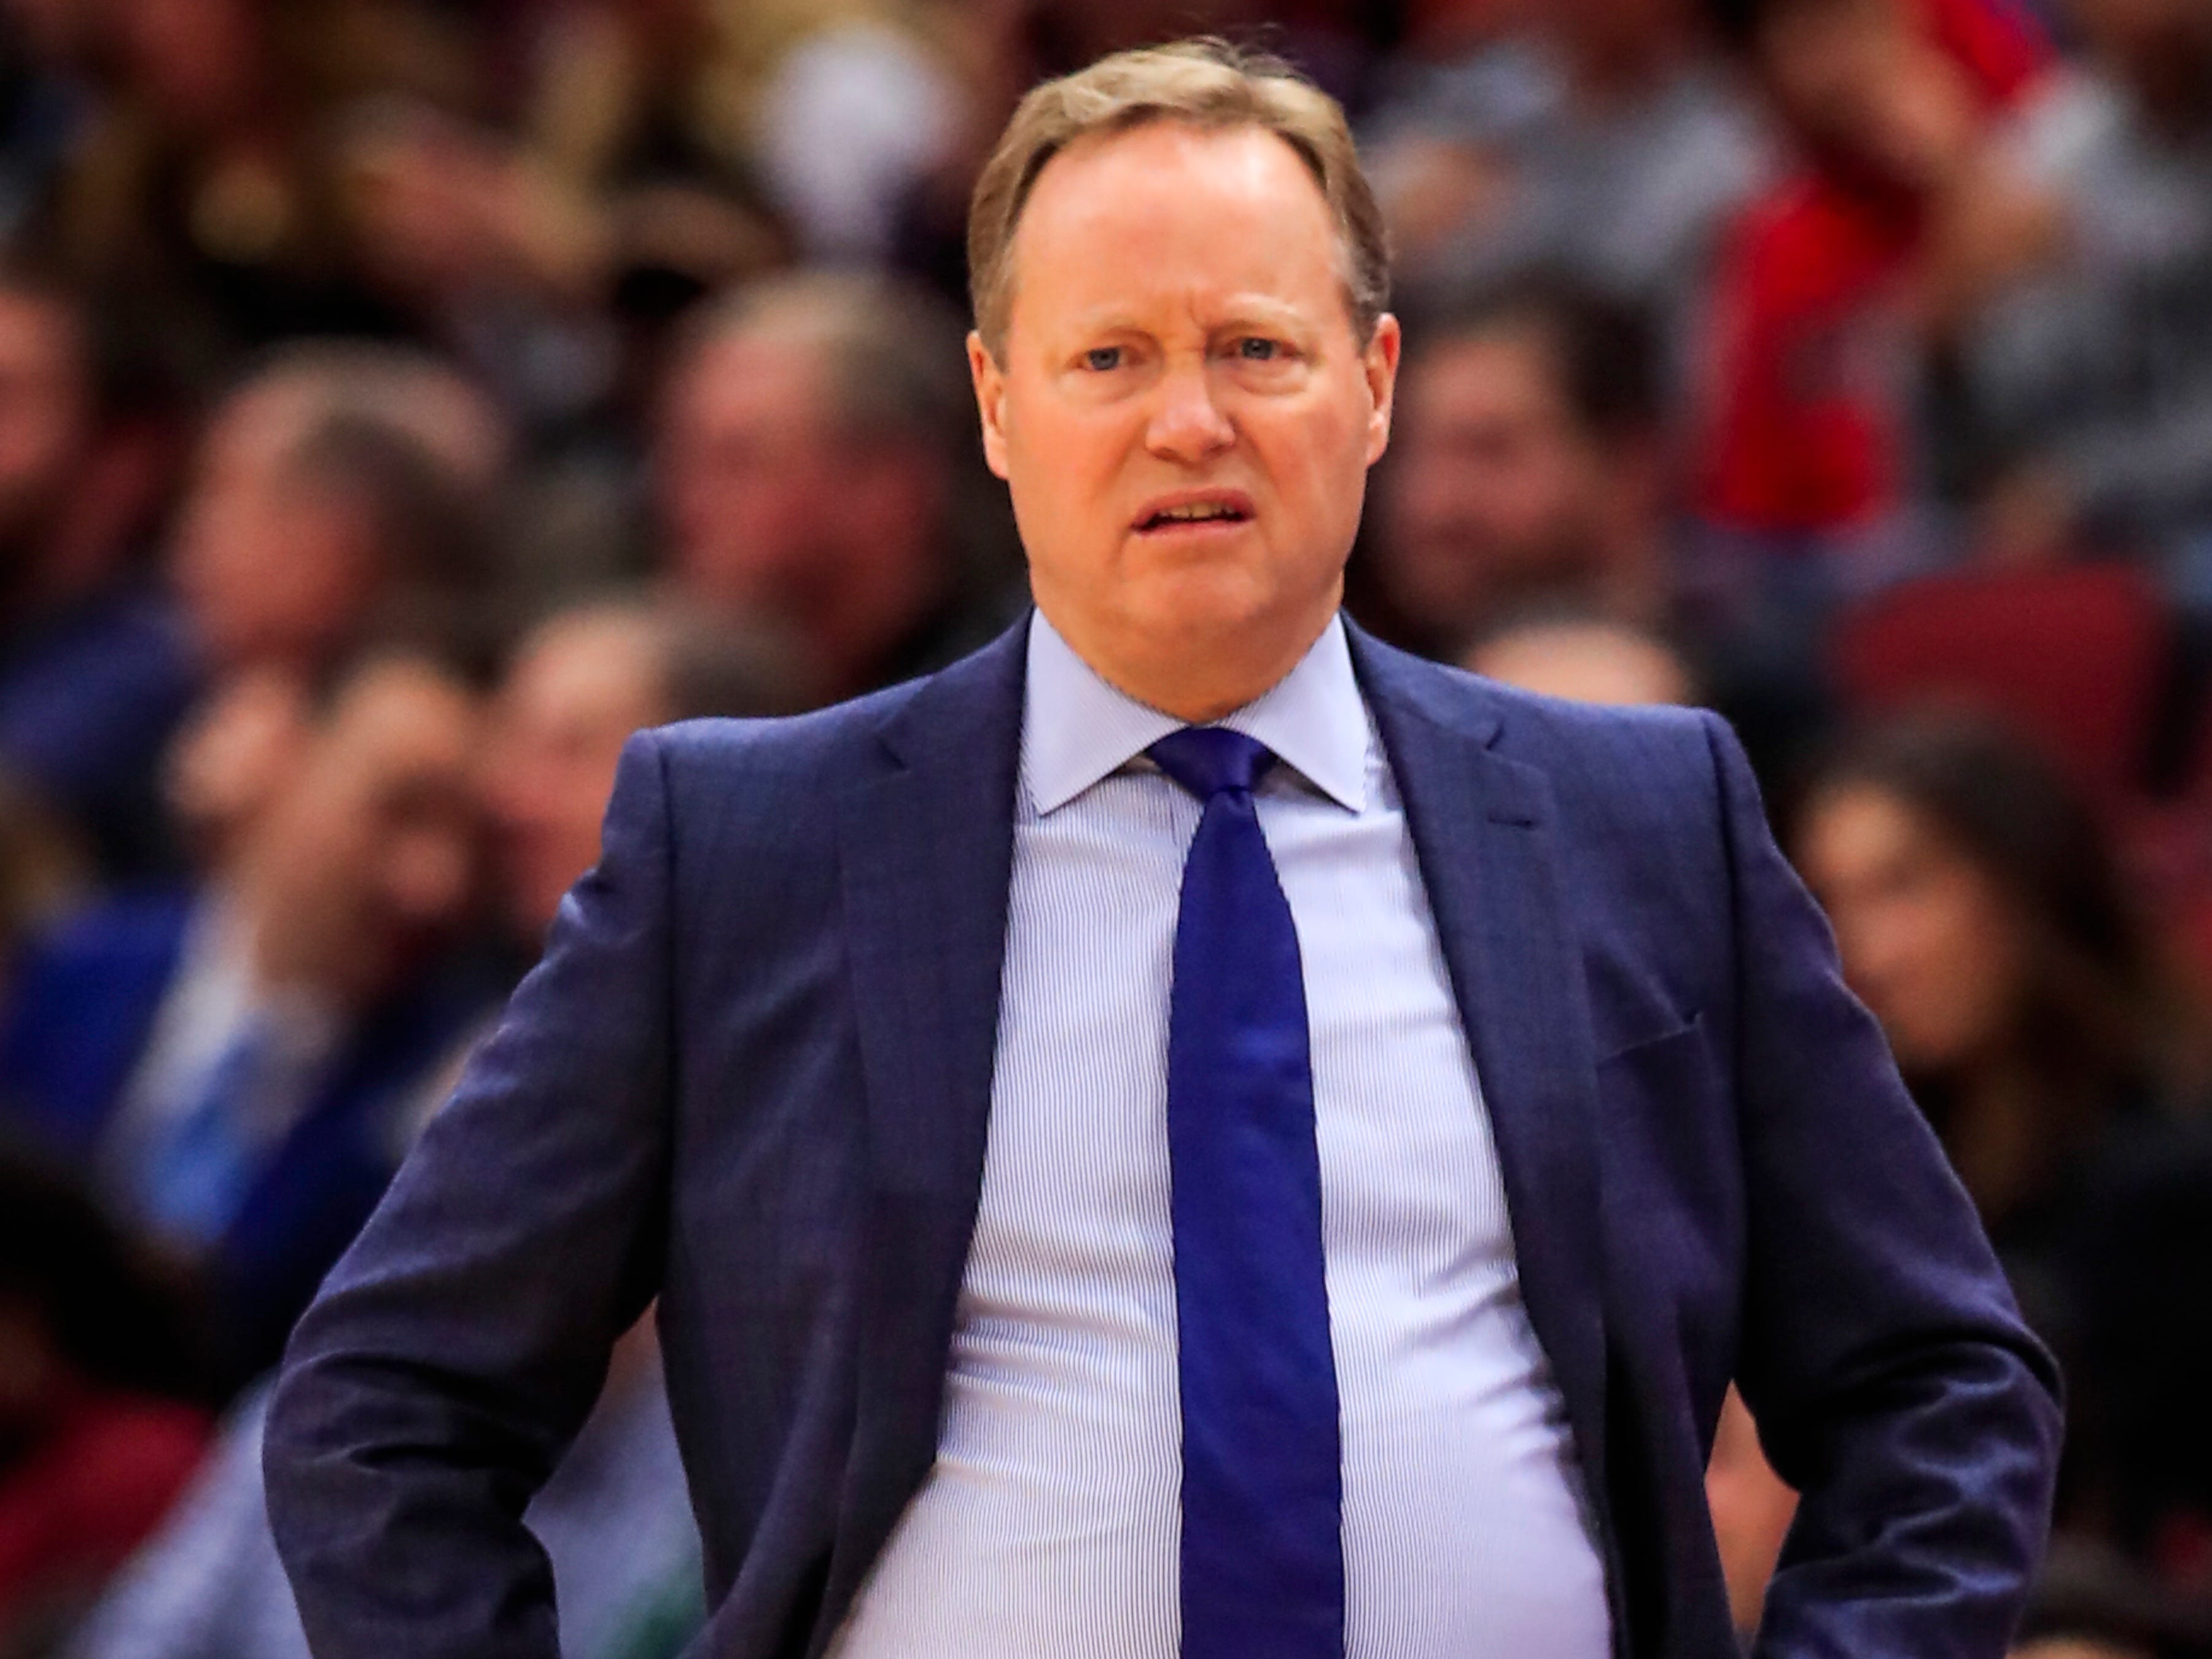 Bucks head coach Mike Budenholzer watches his team take on the Bulls in Chicago with an uneasy look on his face Monday night.